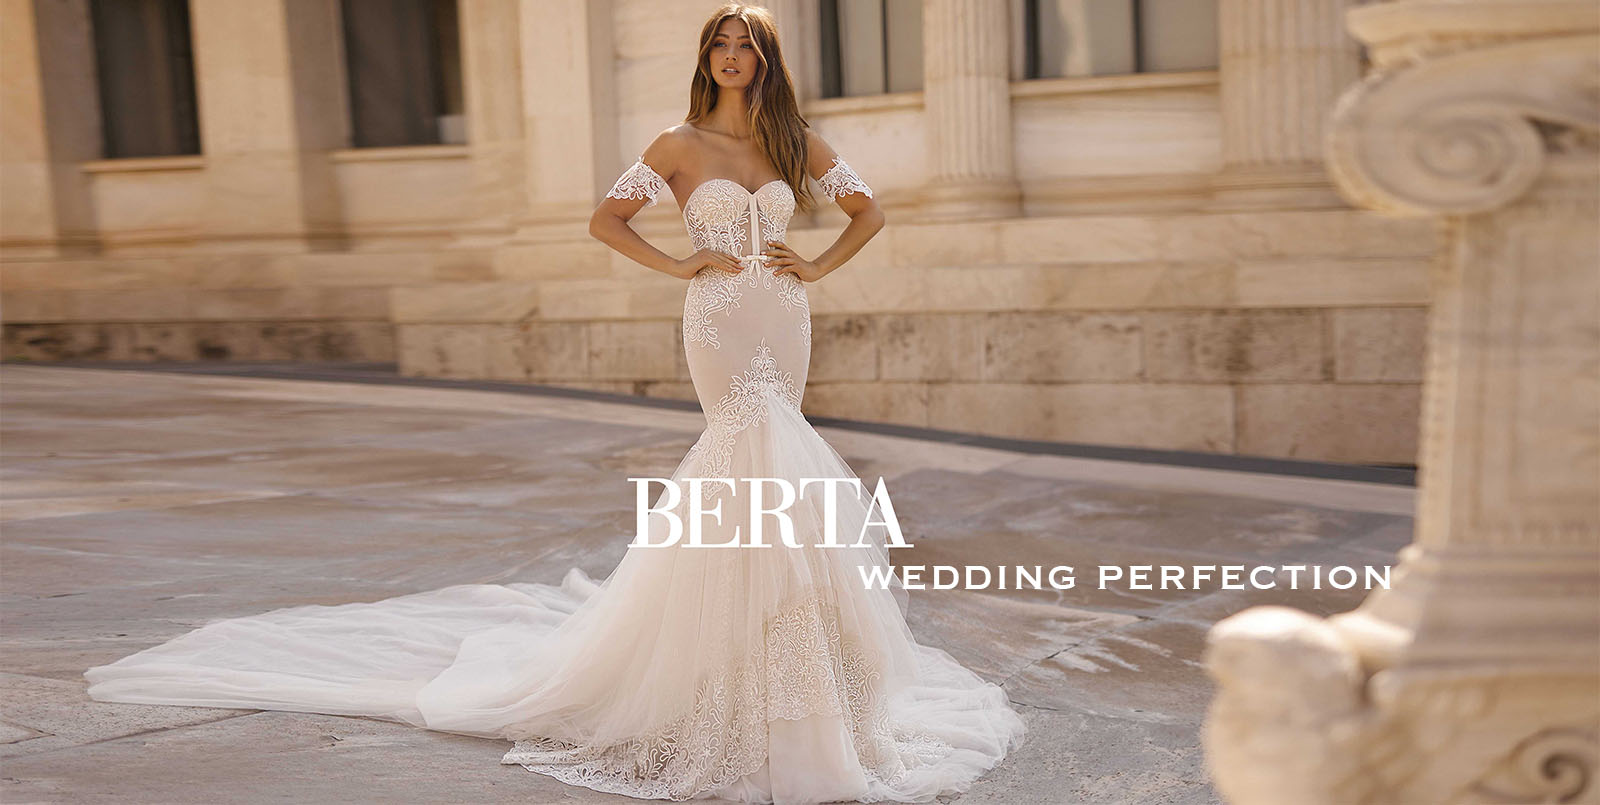 Bridal couture collection from Berta